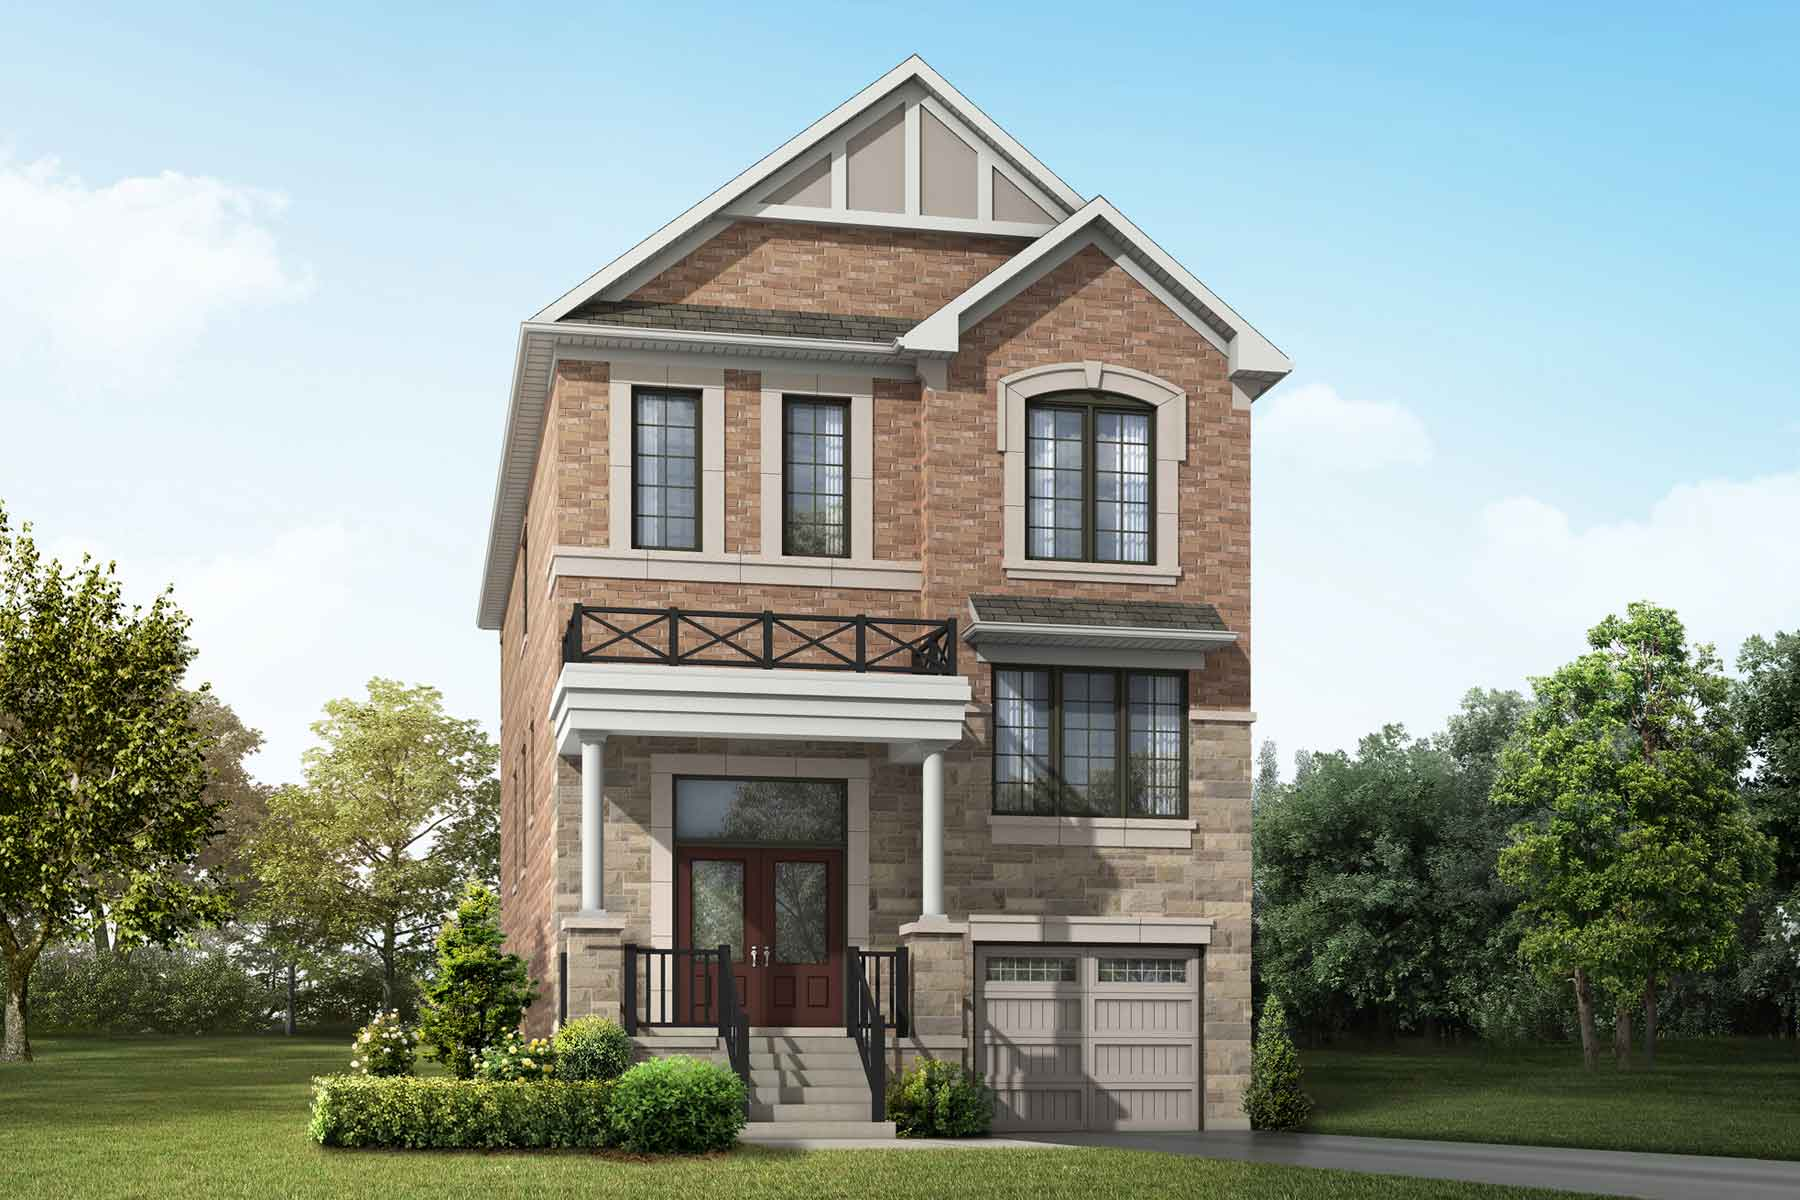 Teal Plan englishmanor_springwater_teal at Springwater in Markham Ontario by Mattamy Homes